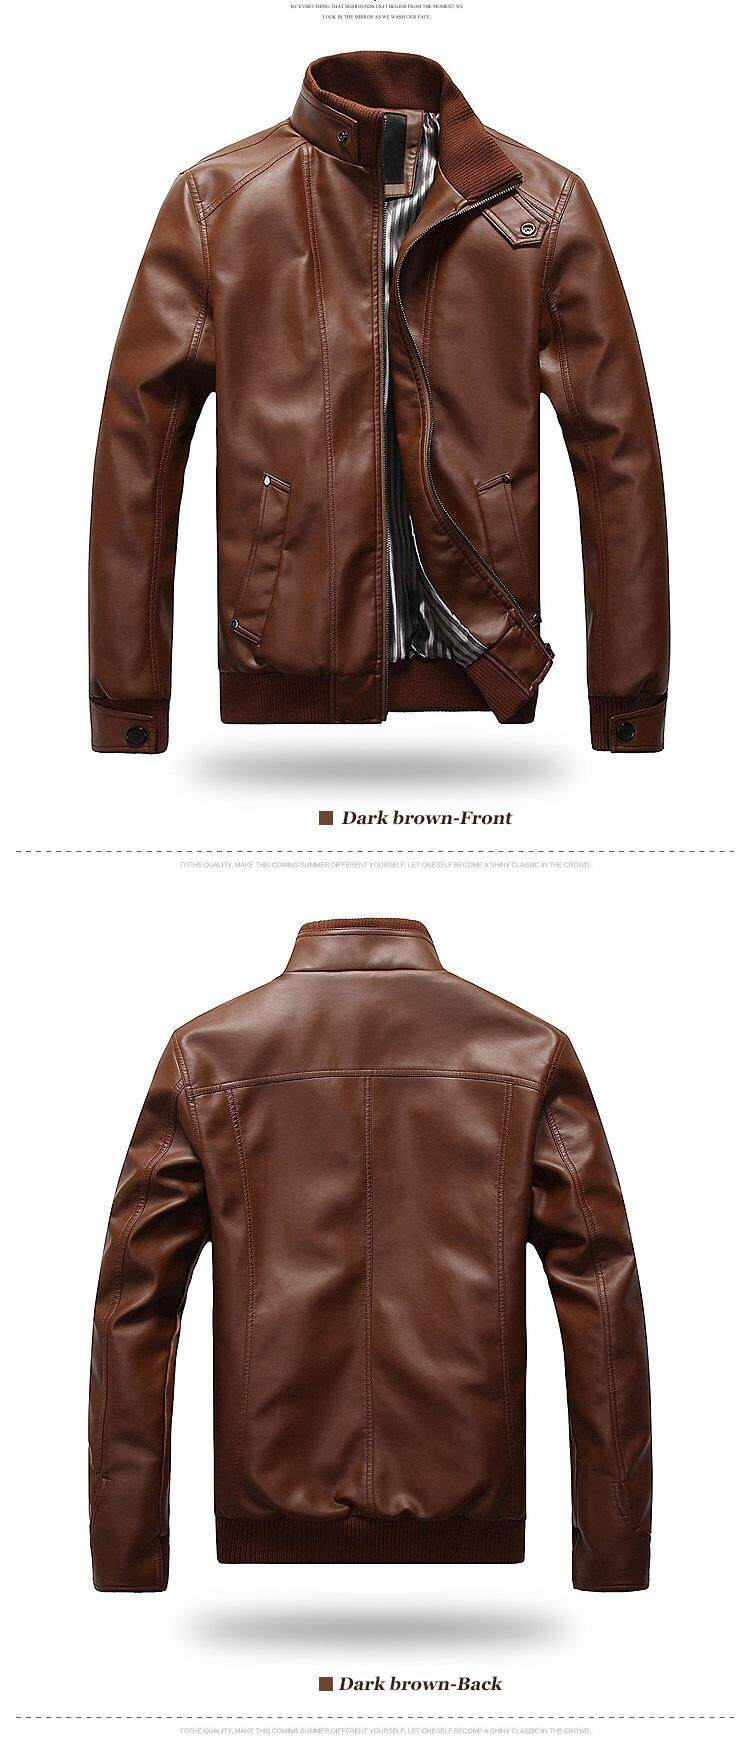 28f767e10 New Fashion Motorcycle Leather Jackets Men Leather Coat Casual Slim Coats  with Zipper Man Outerwear Stand Collar Jackets Jaqueta